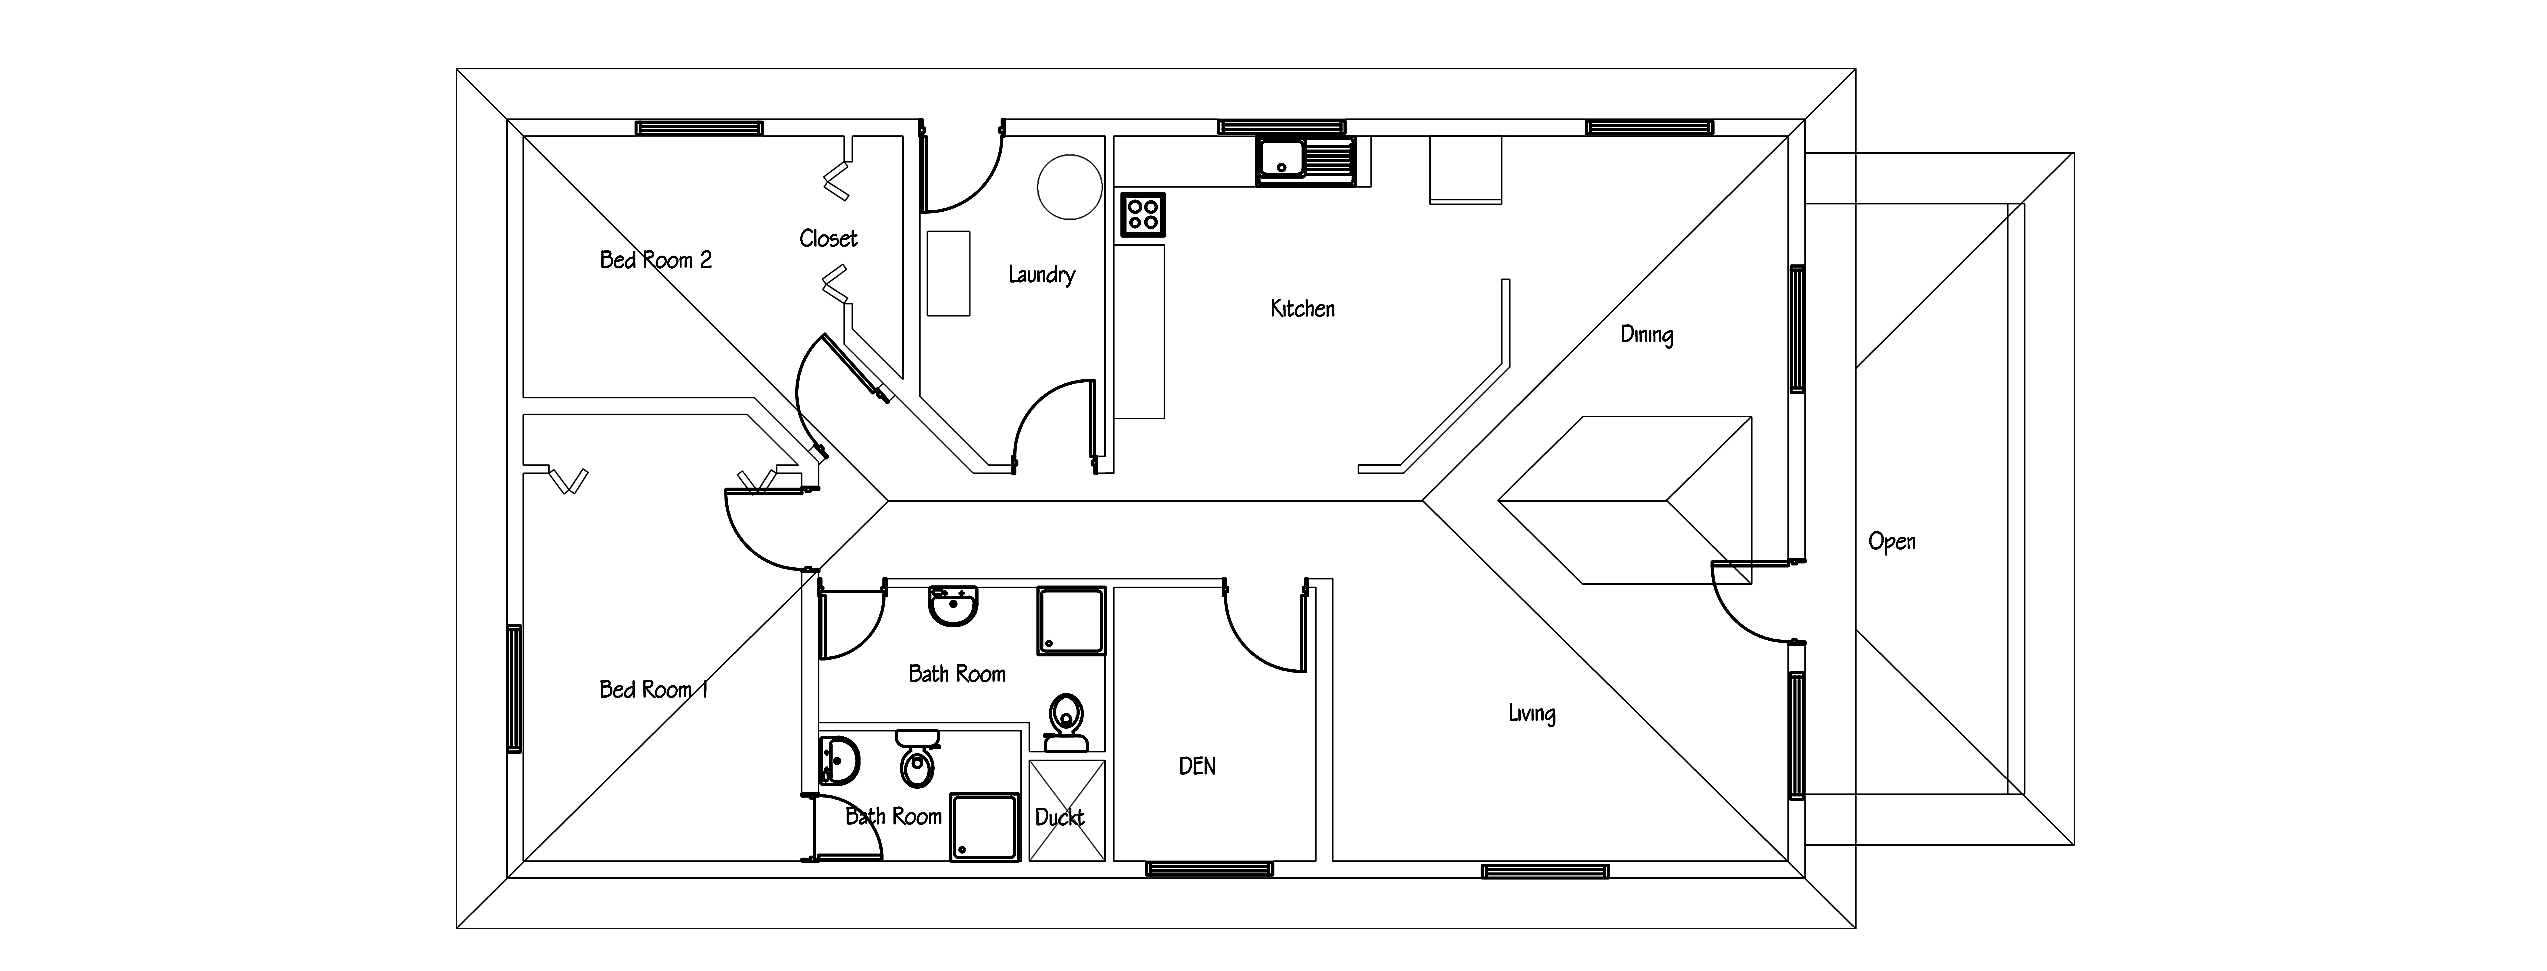 Small house plan free download with pdf and cad file for House plan cad file